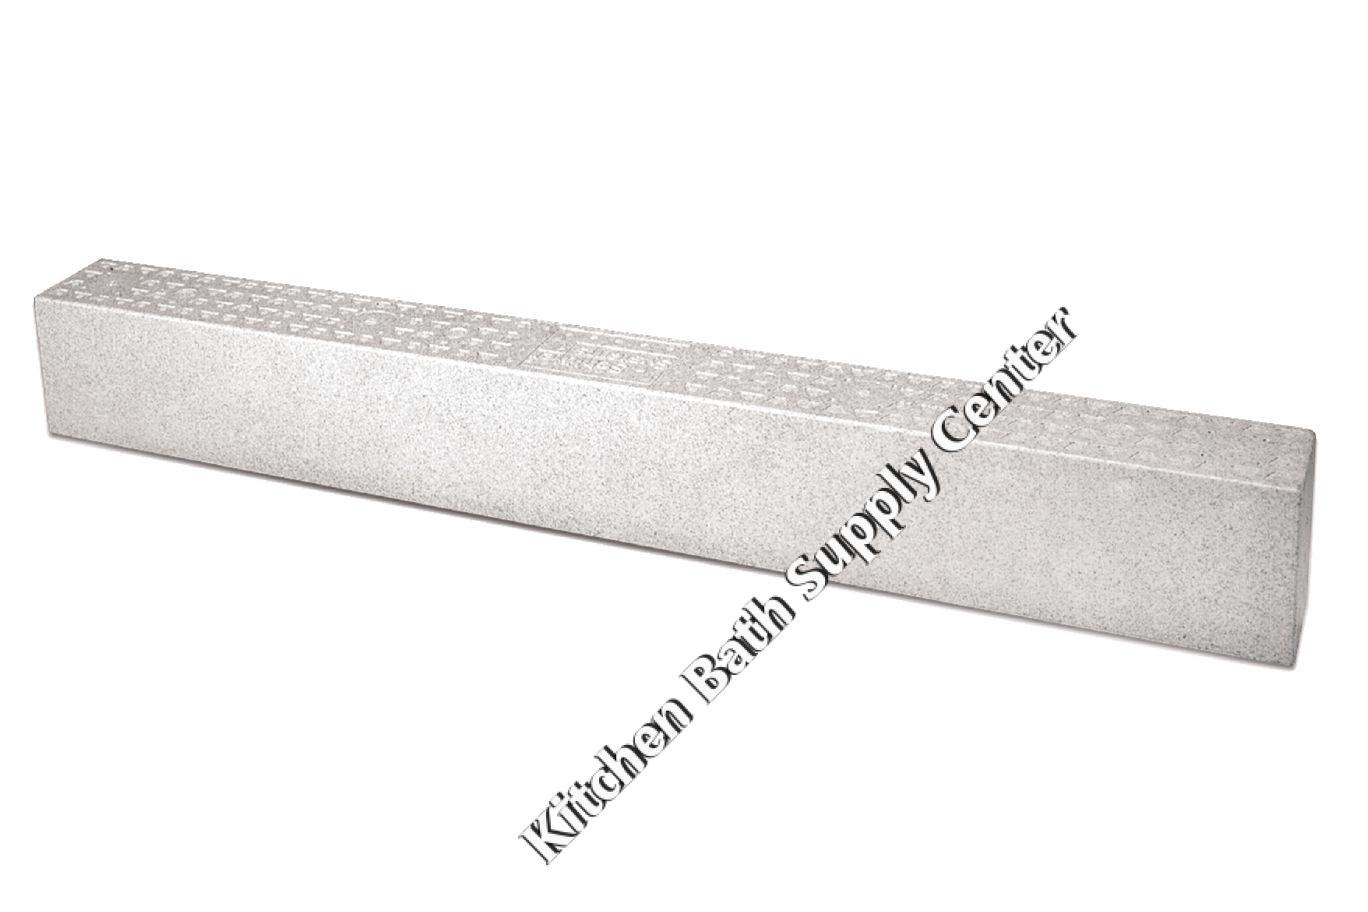 Shower Systems Kerdi Shower Curb 48 Inch by Schluter Systems